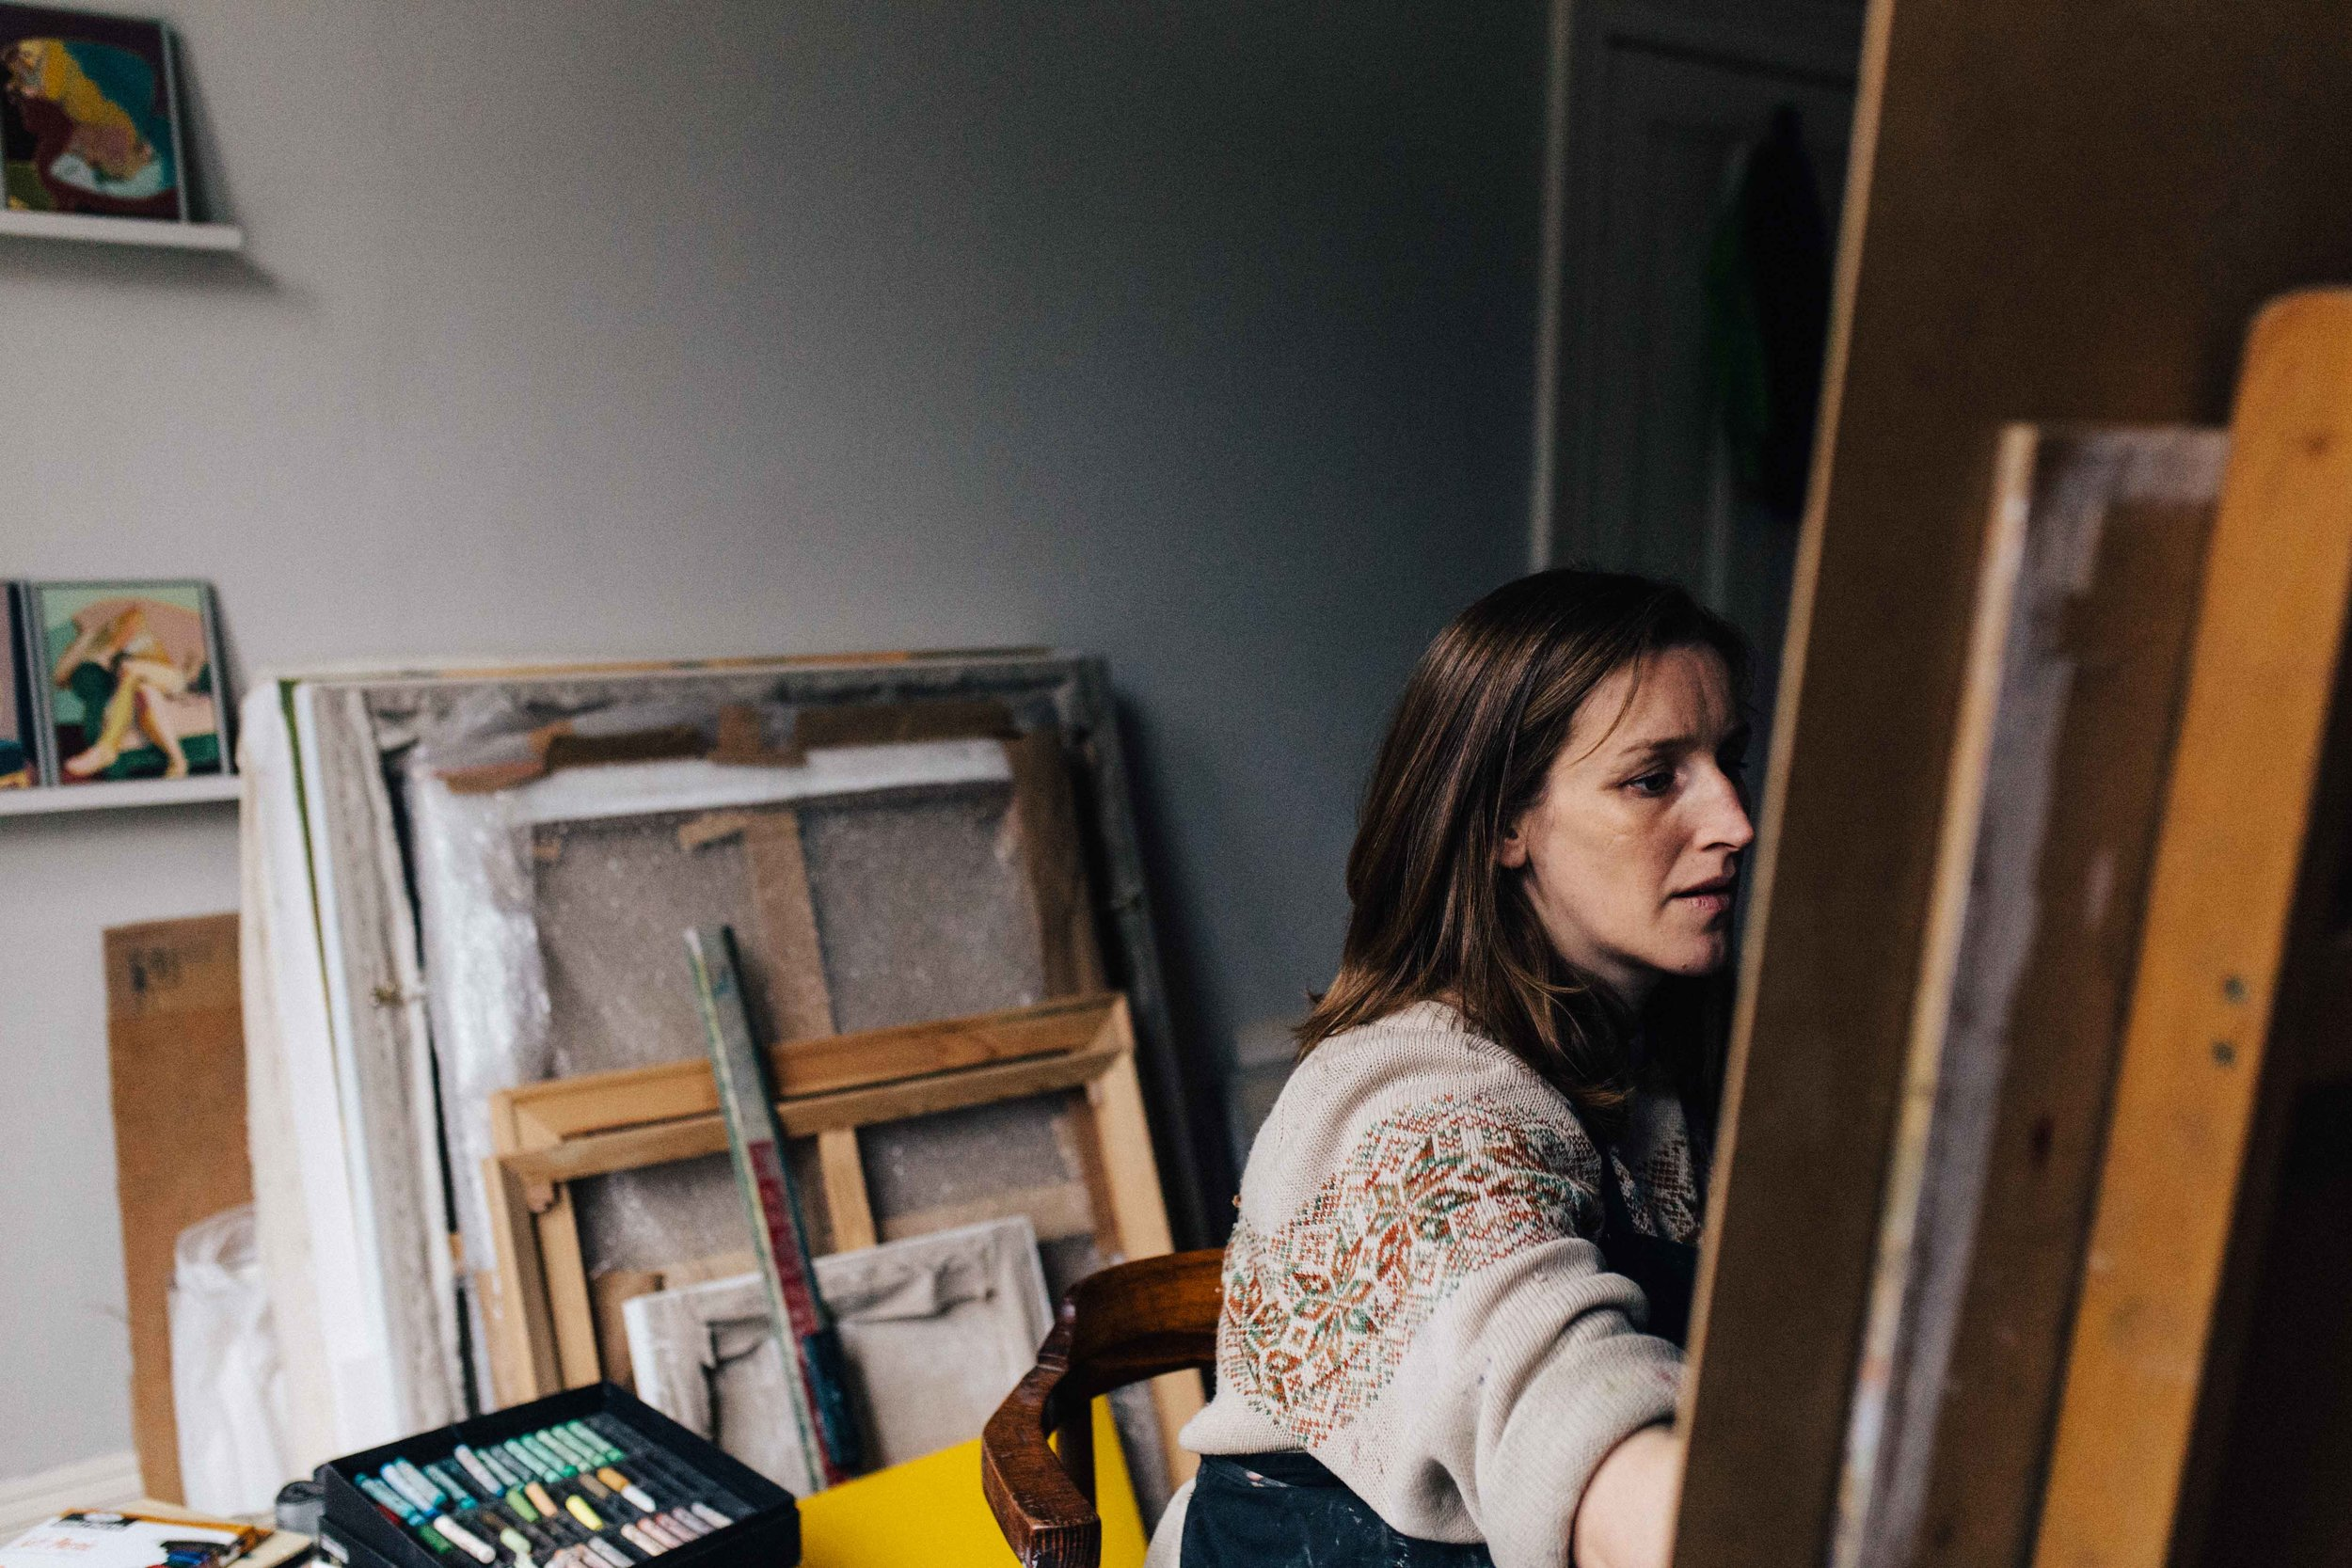 Visual artist Hester Finch at work in studio